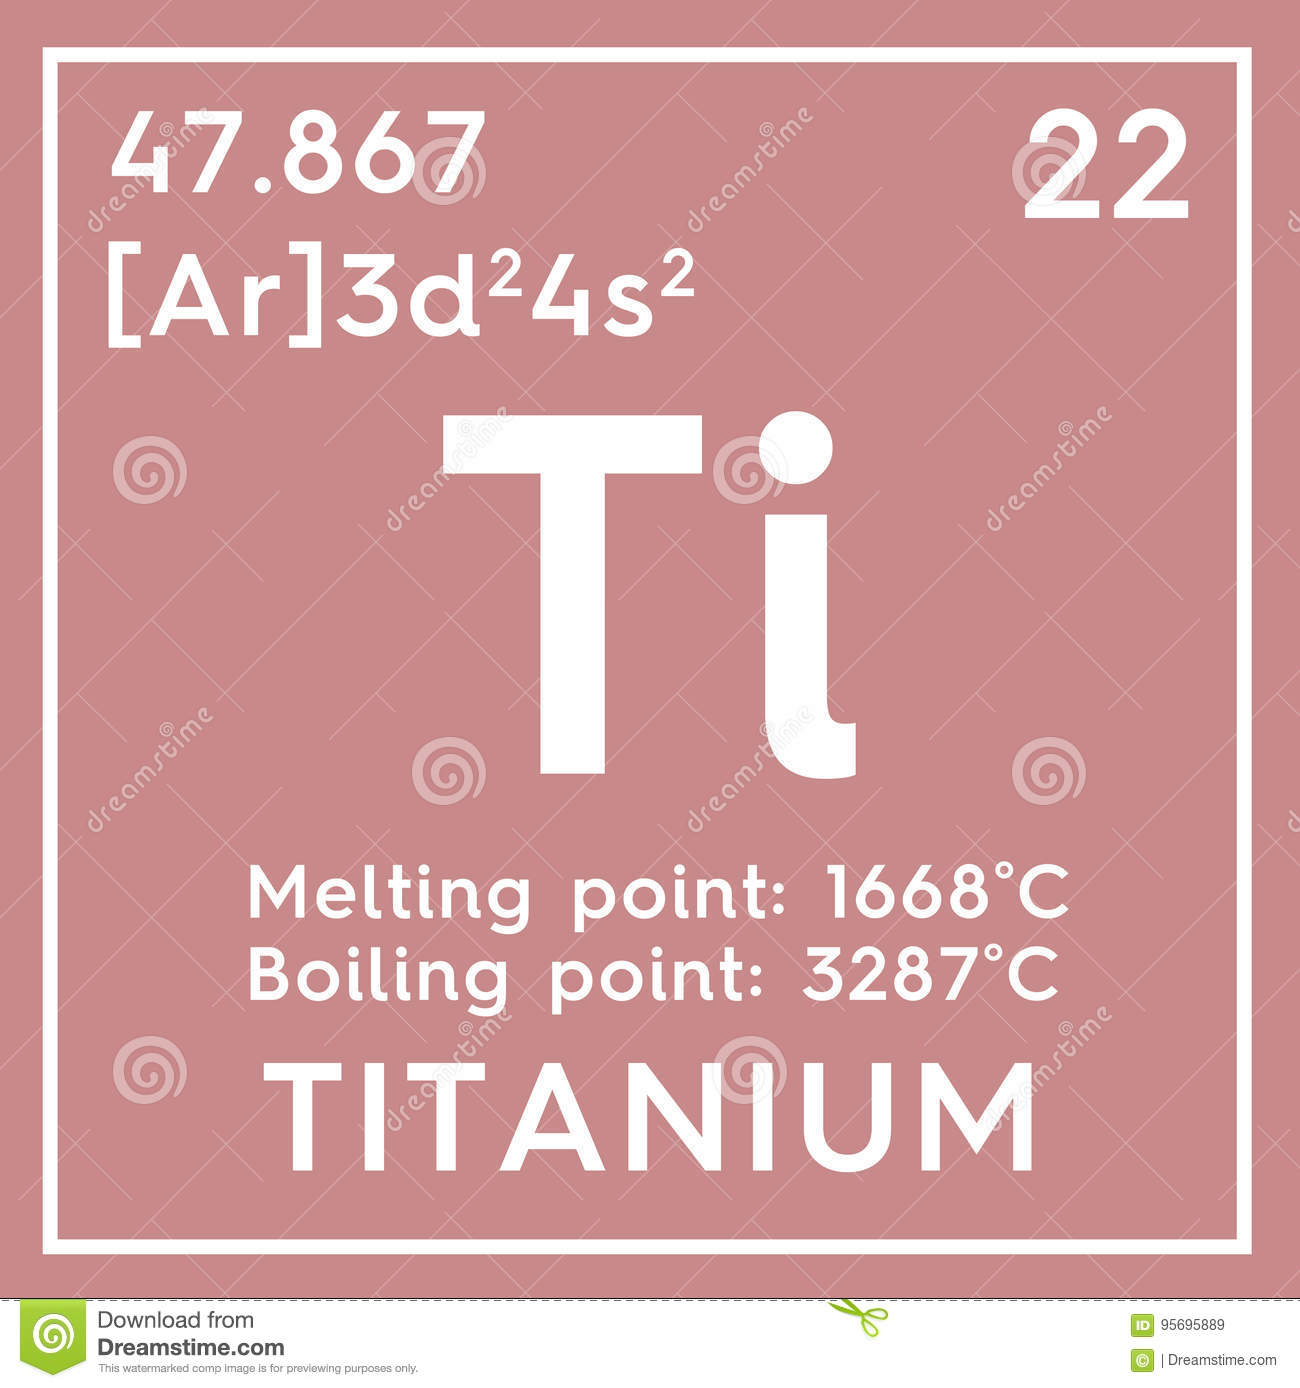 Titanium transition metals chemical element of mendeleev chemical element of mendeleev periodic table gamestrikefo Image collections